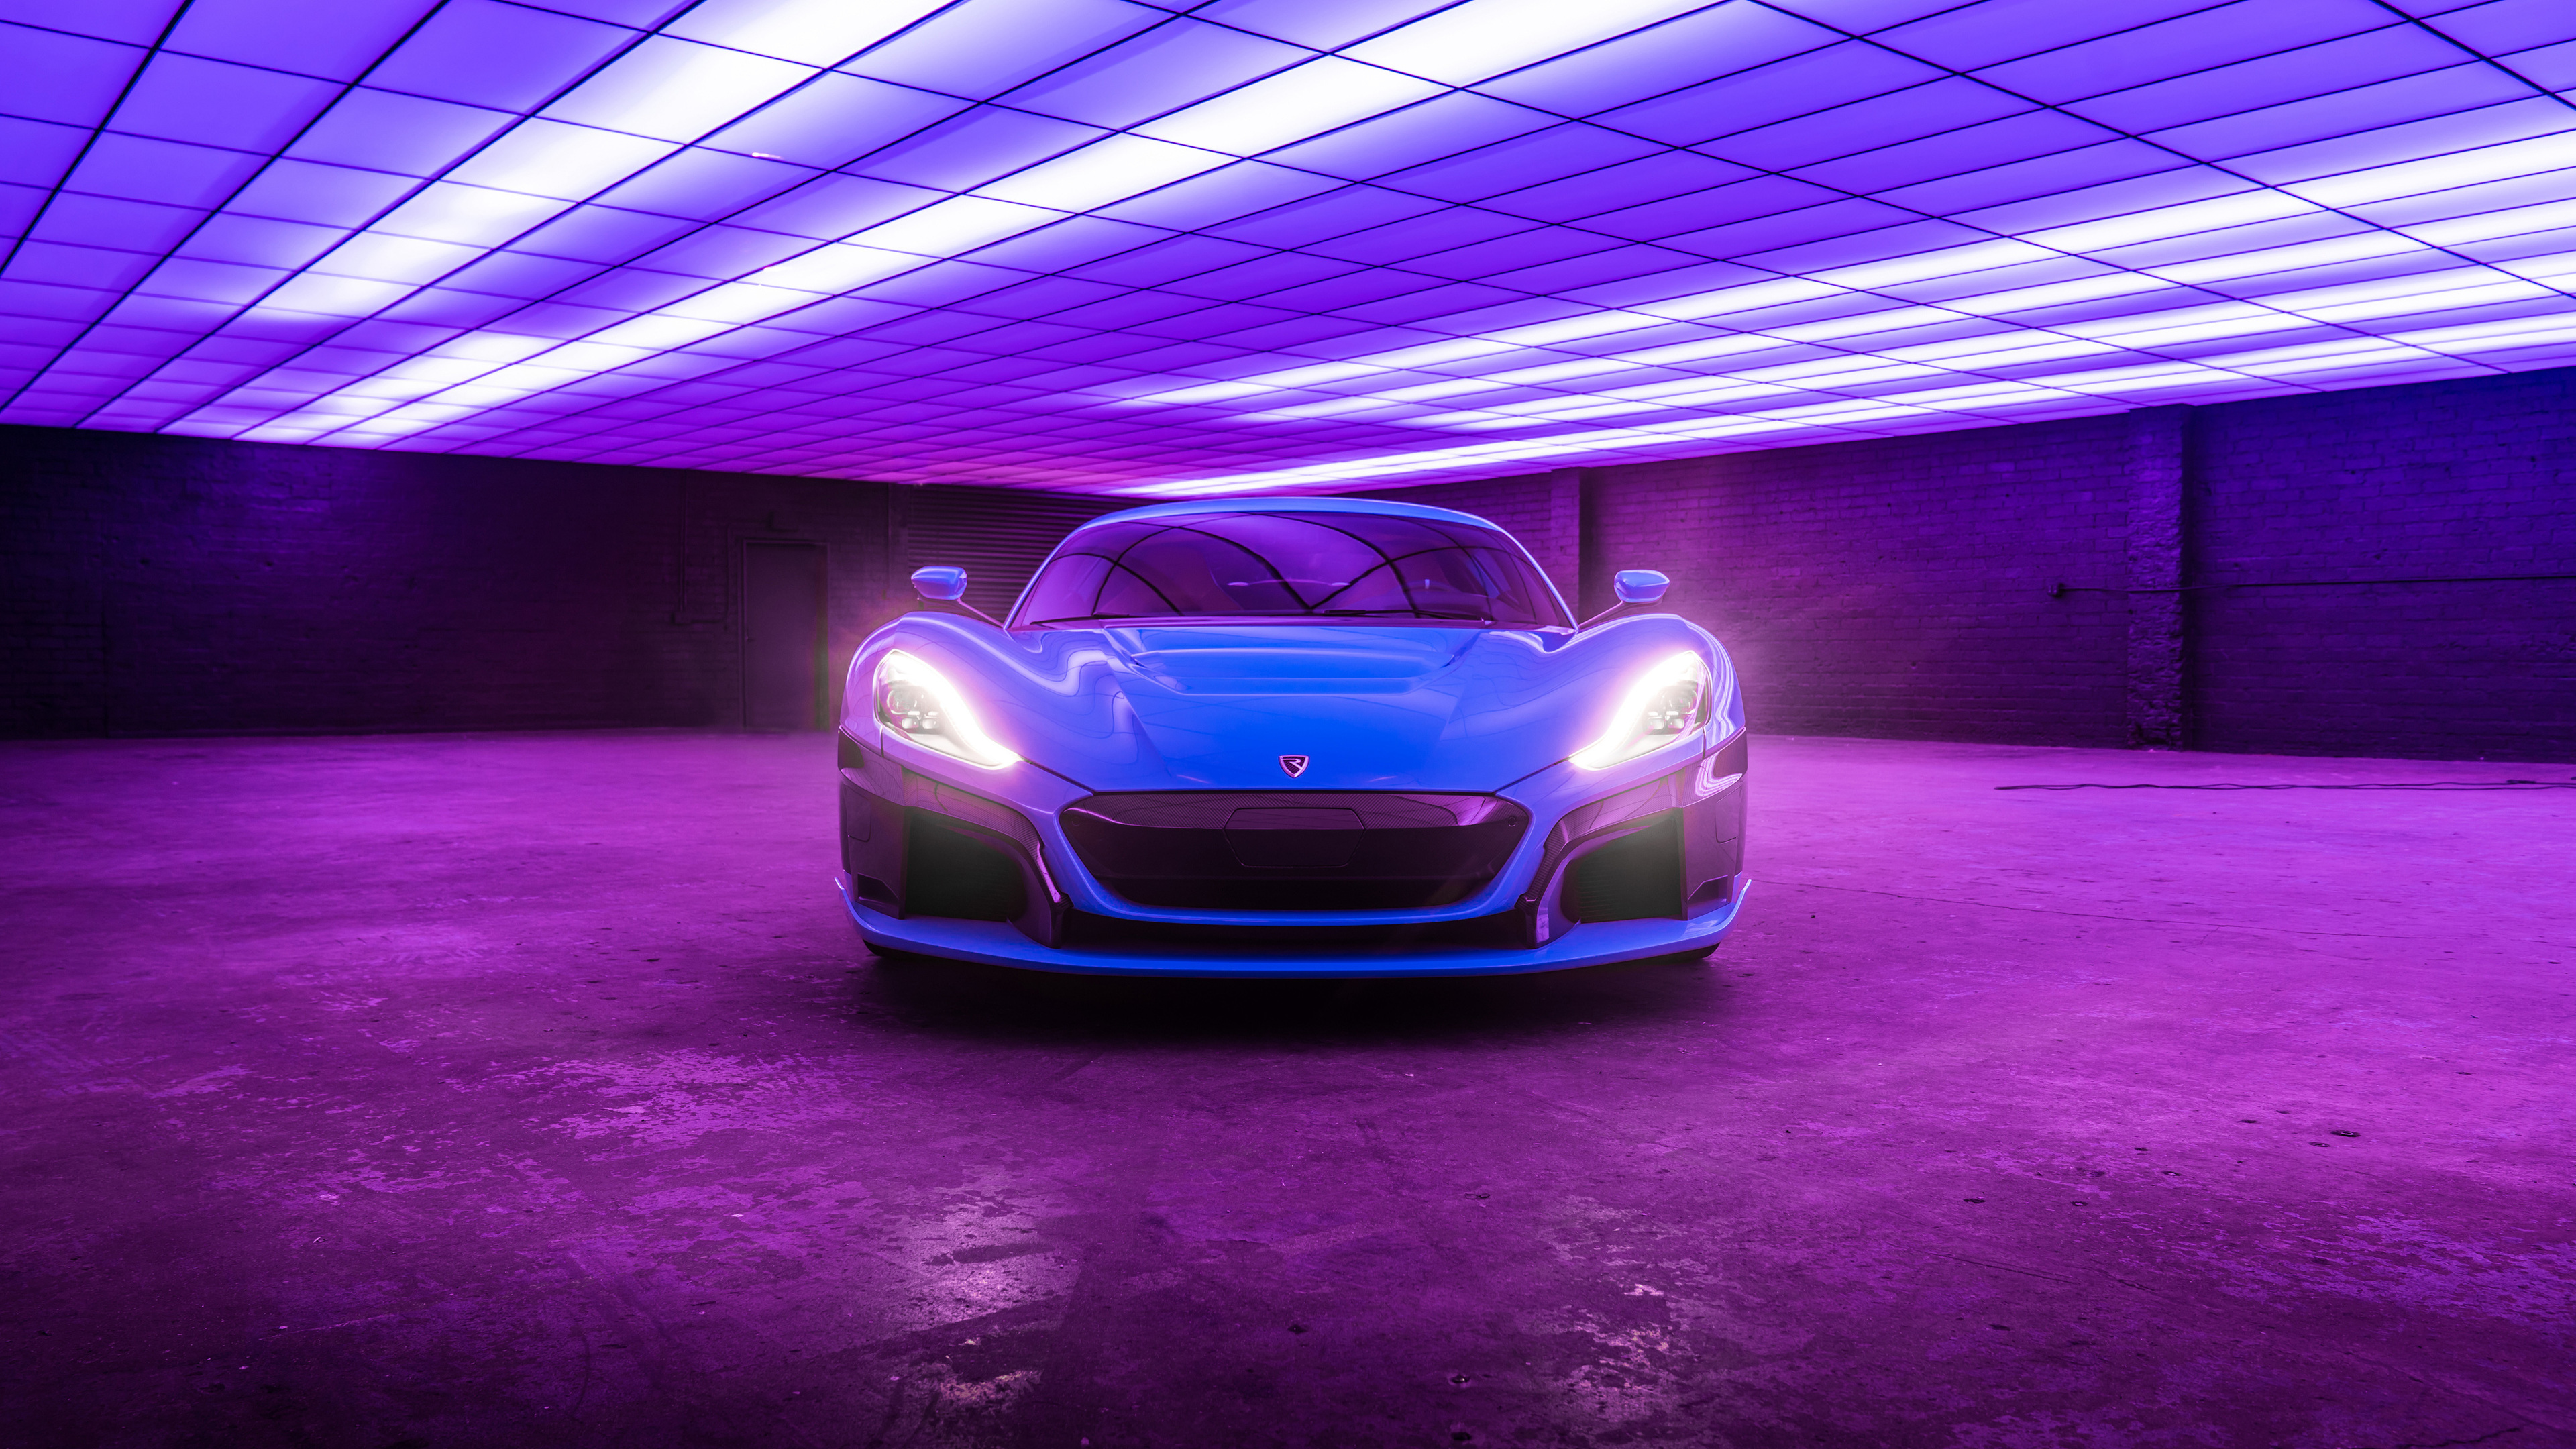 2018 rimac c two california edition 1539113963 - 2018 Rimac C Two California Edition - rimac wallpapers, rimac c two wallpapers, hd-wallpapers, cars wallpapers, 4k-wallpapers, 2018 cars wallpapers